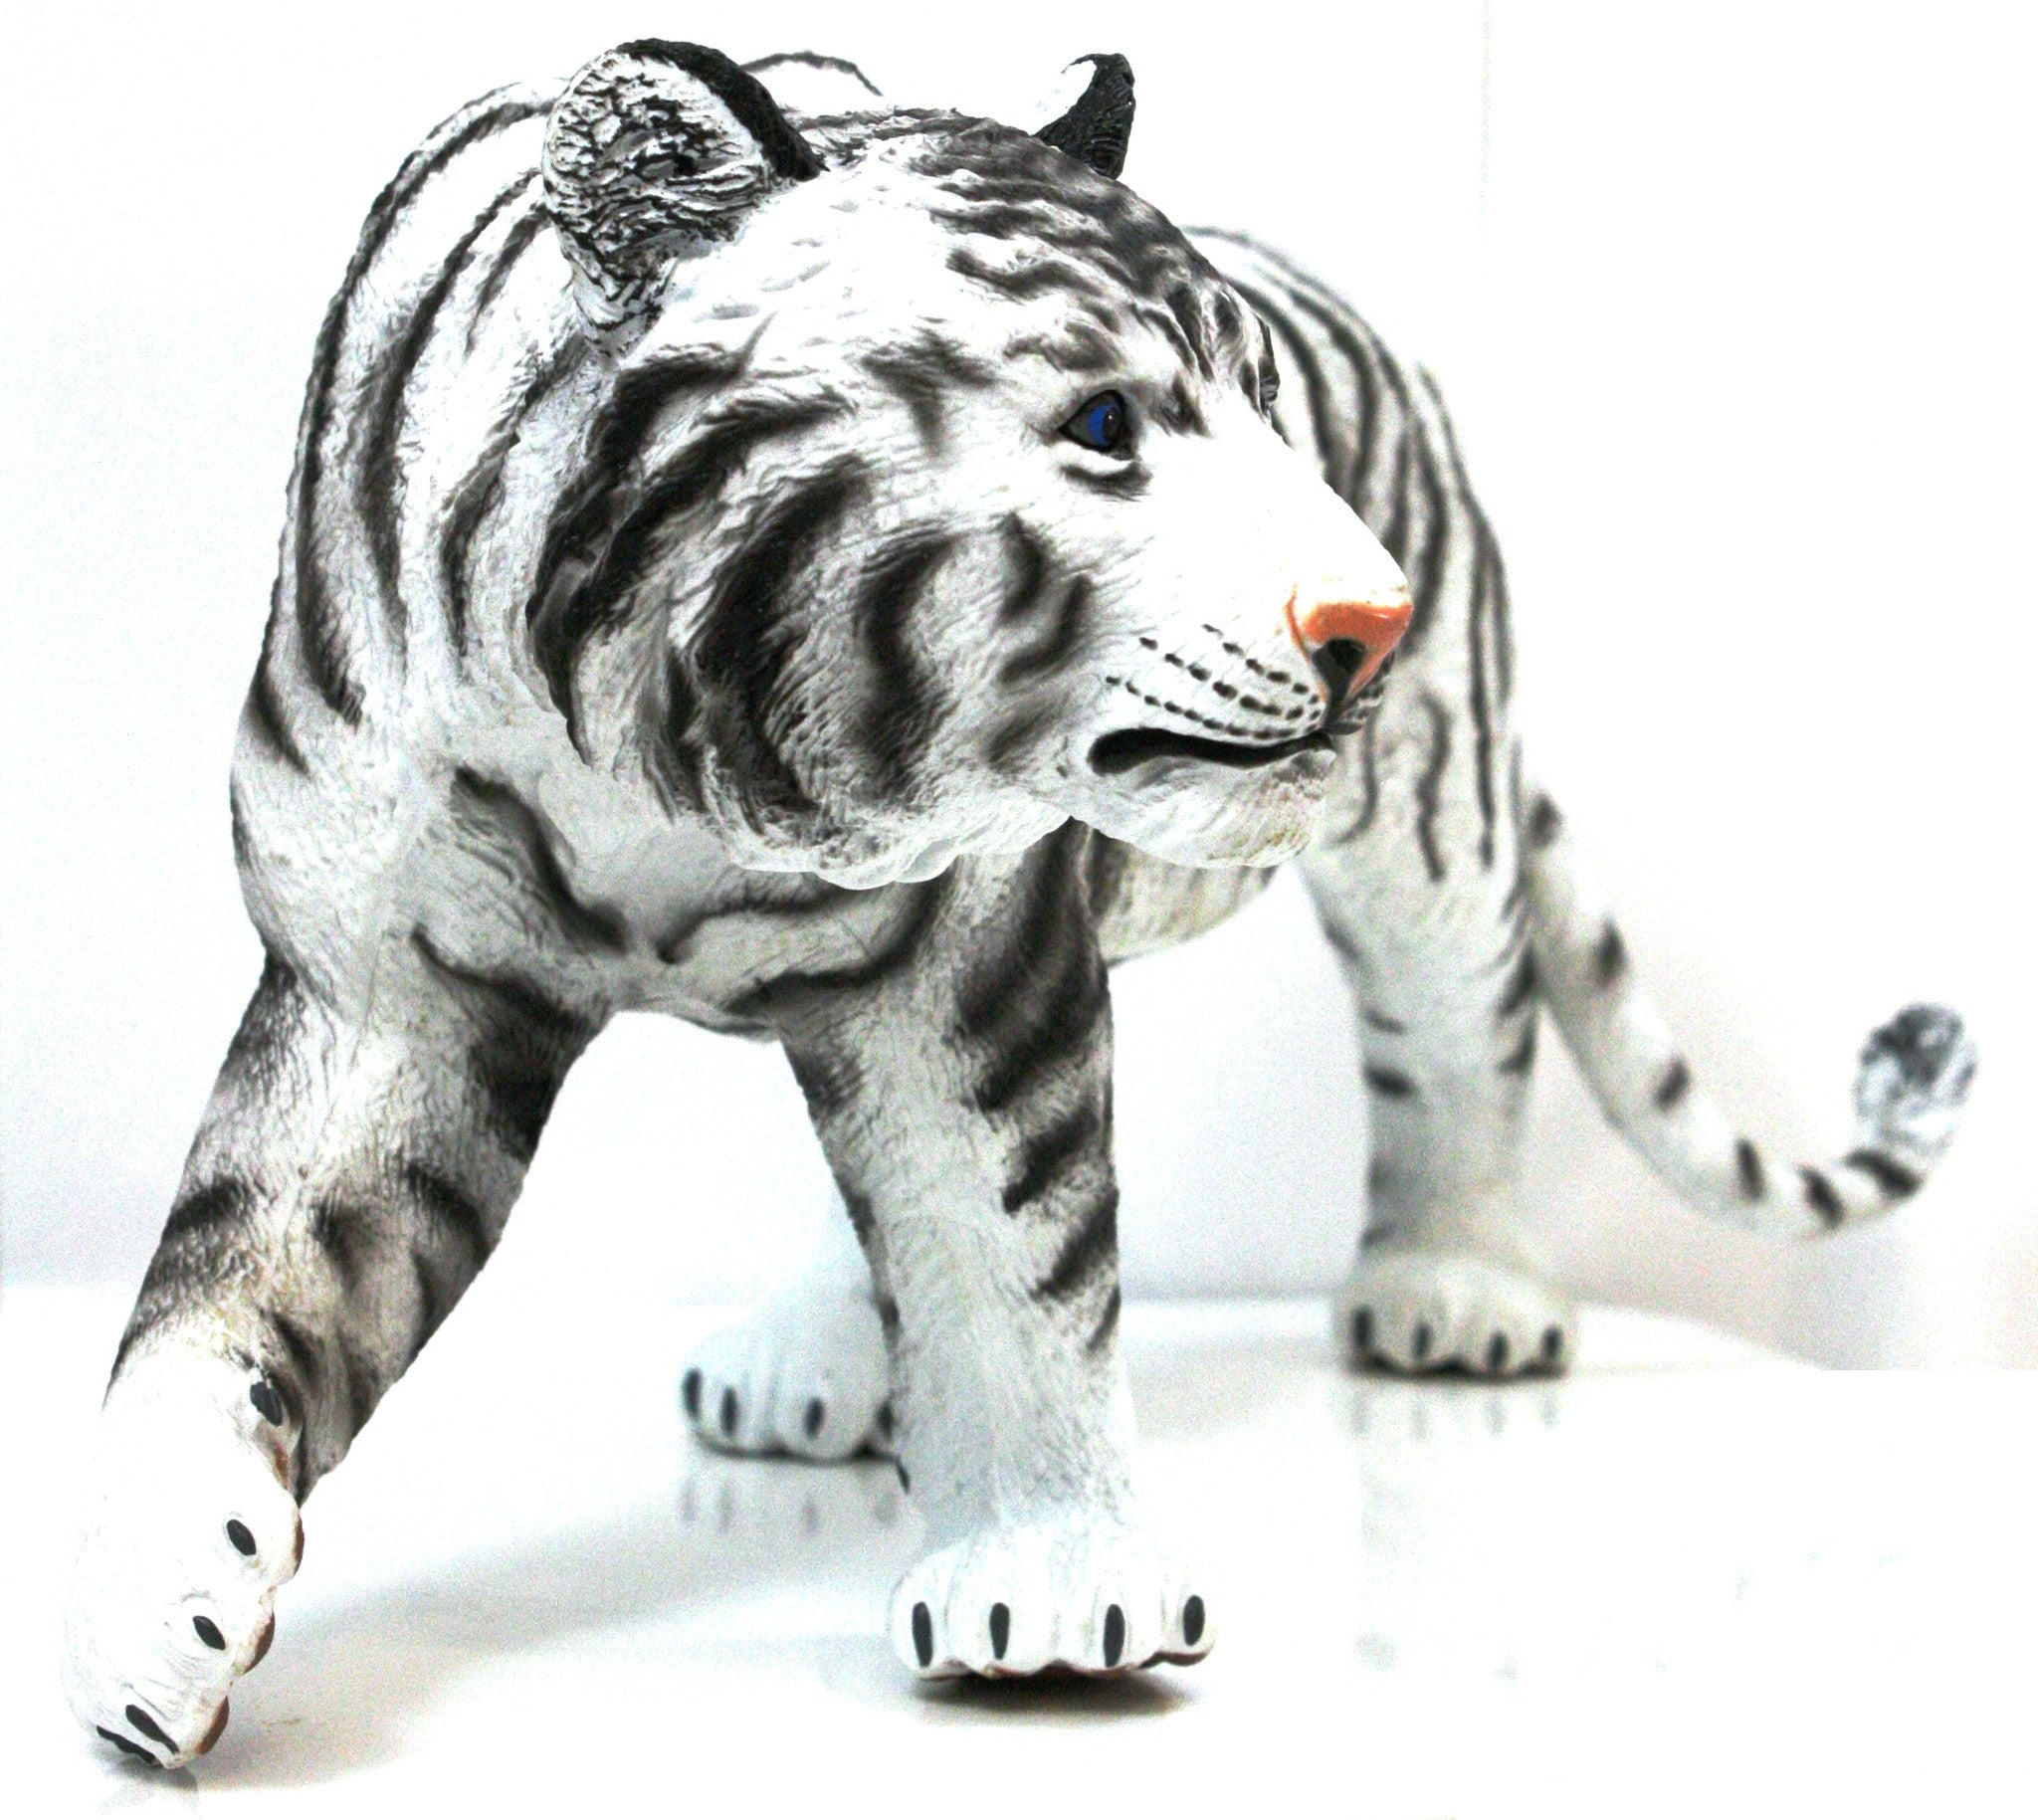 16 inch Realistic Rubber Animal Replica - White Tiger - Off The Wall Toys and Gifts